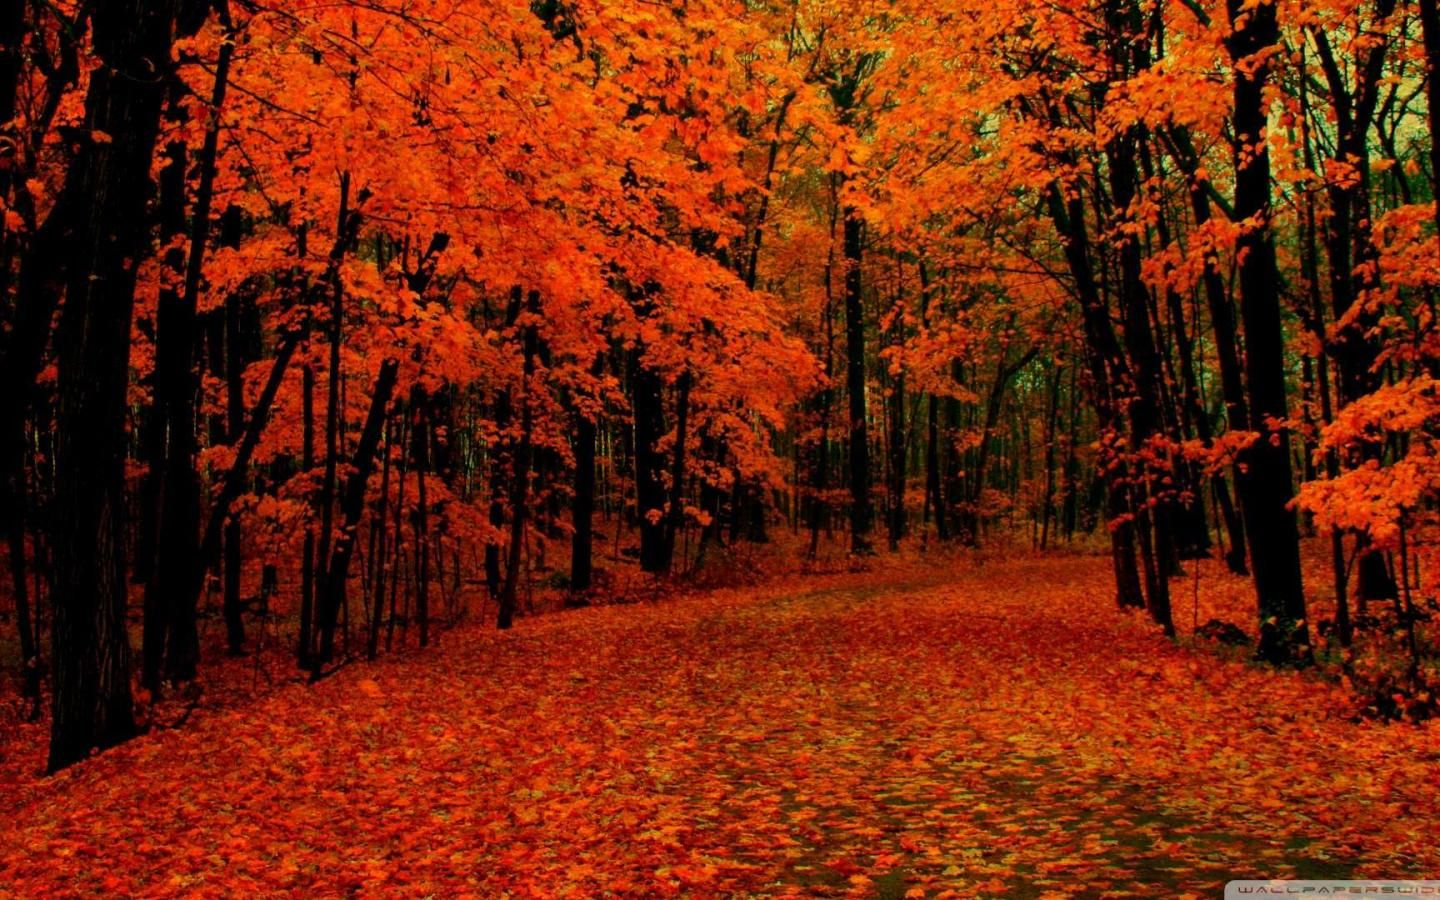 Fall Desktop Wallpapers Fall Background Images Fall Wallpaper Autumn Leaves Wallpaper